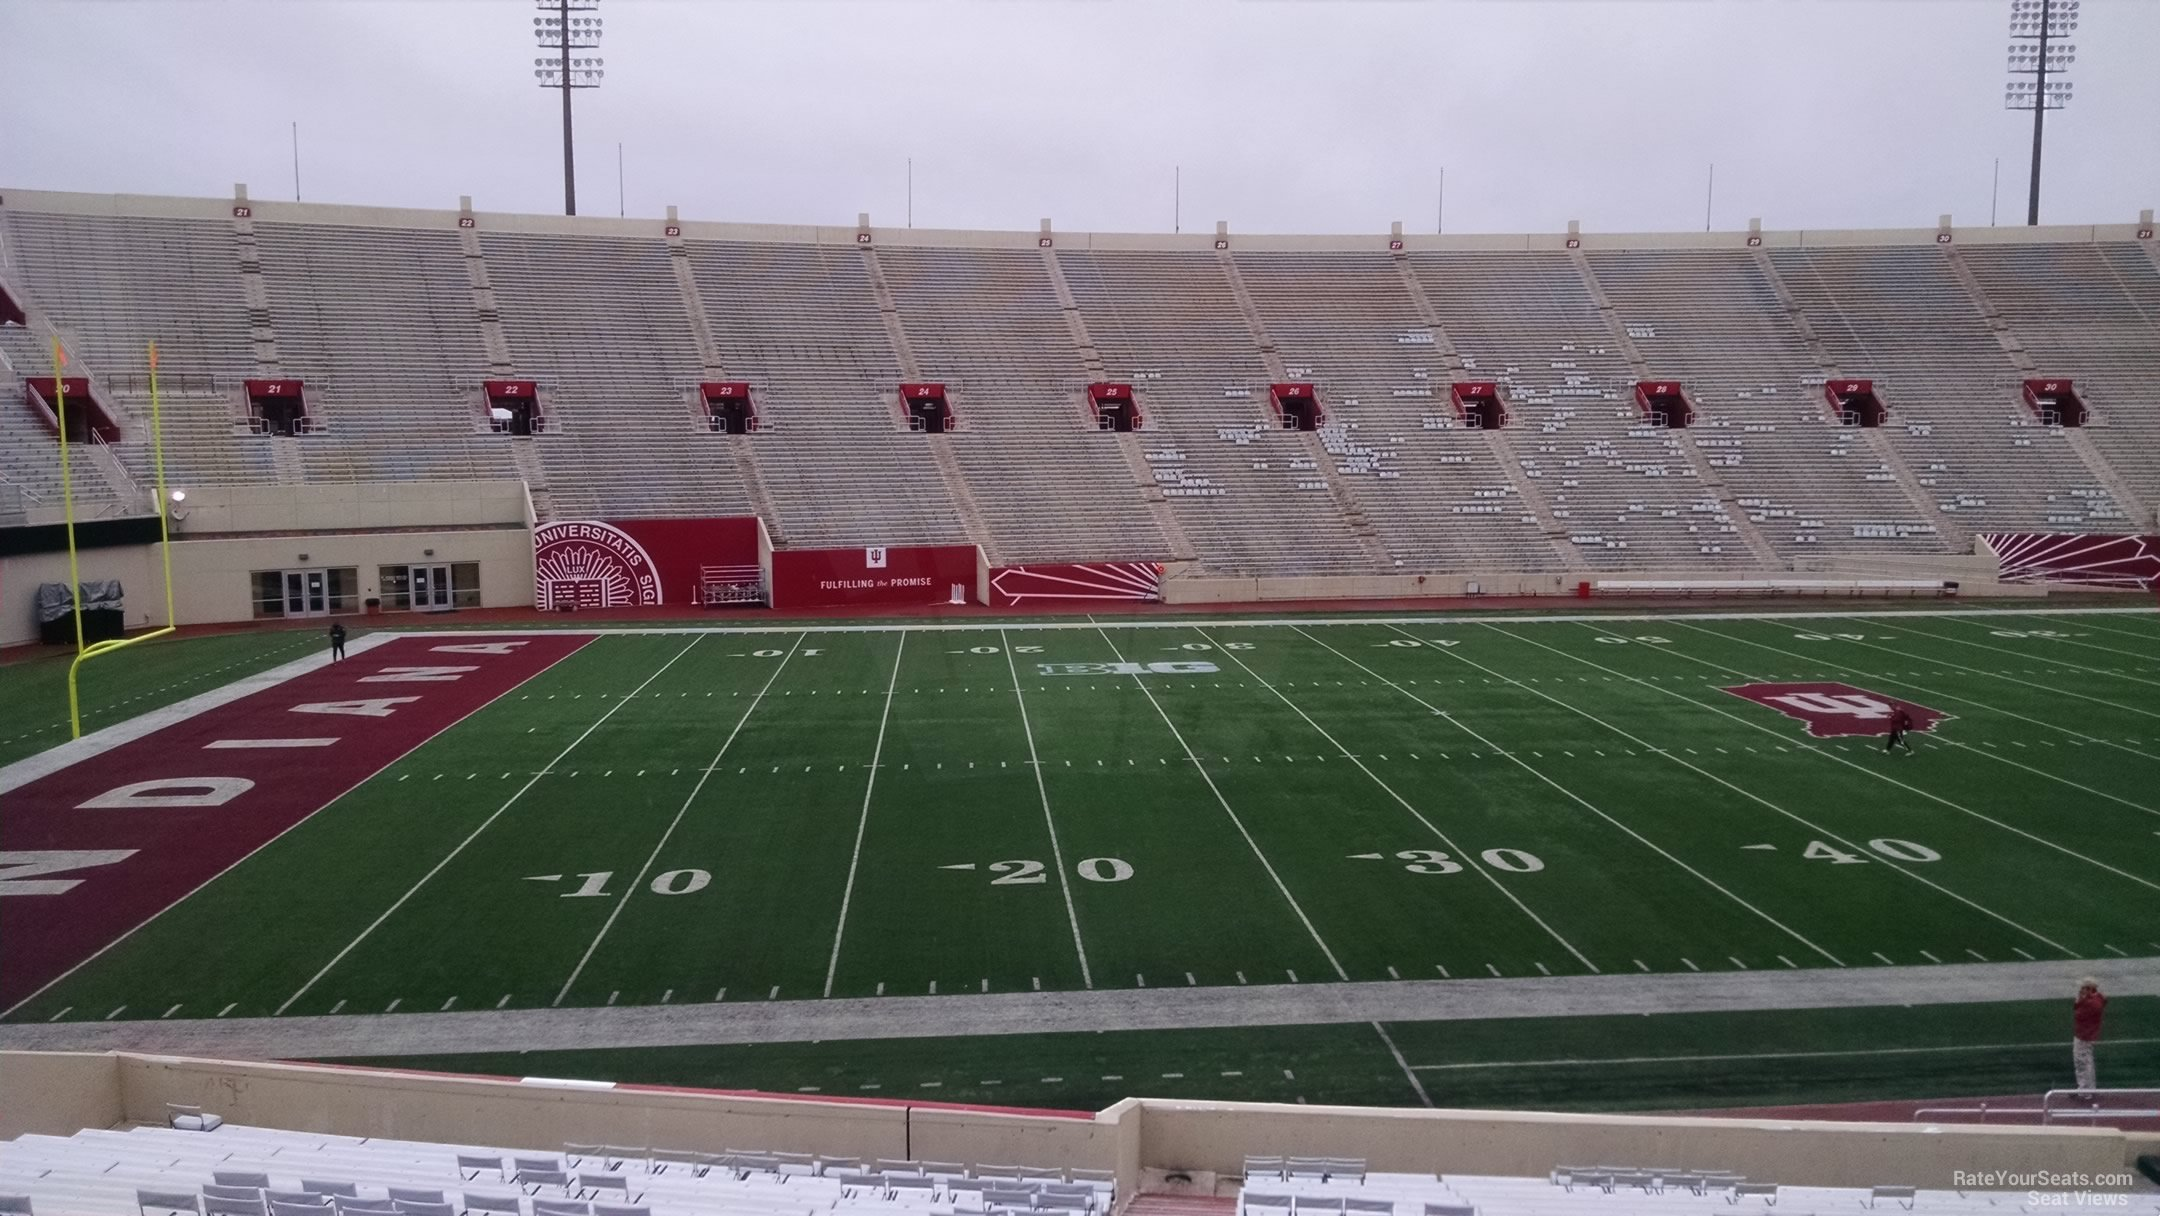 Seat View for Memorial Stadium - IN Section 9, Row 30